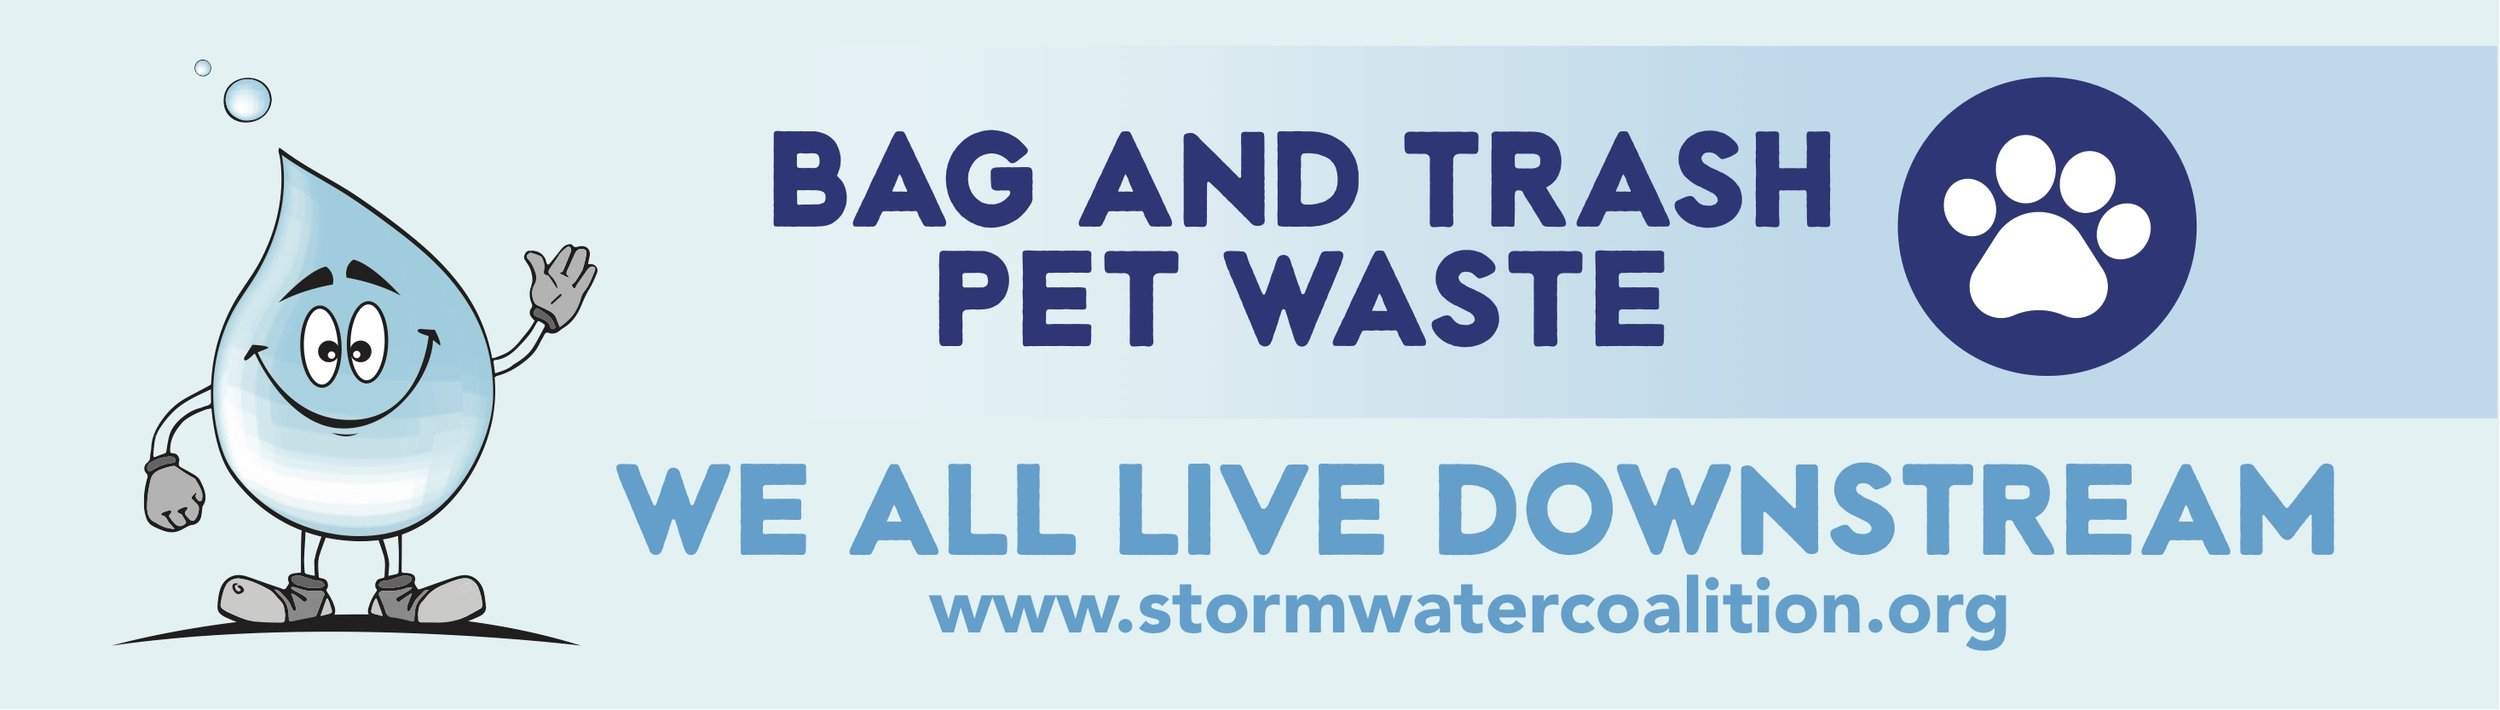 SLCo Stormwater Coalition 2019 Digital billboard